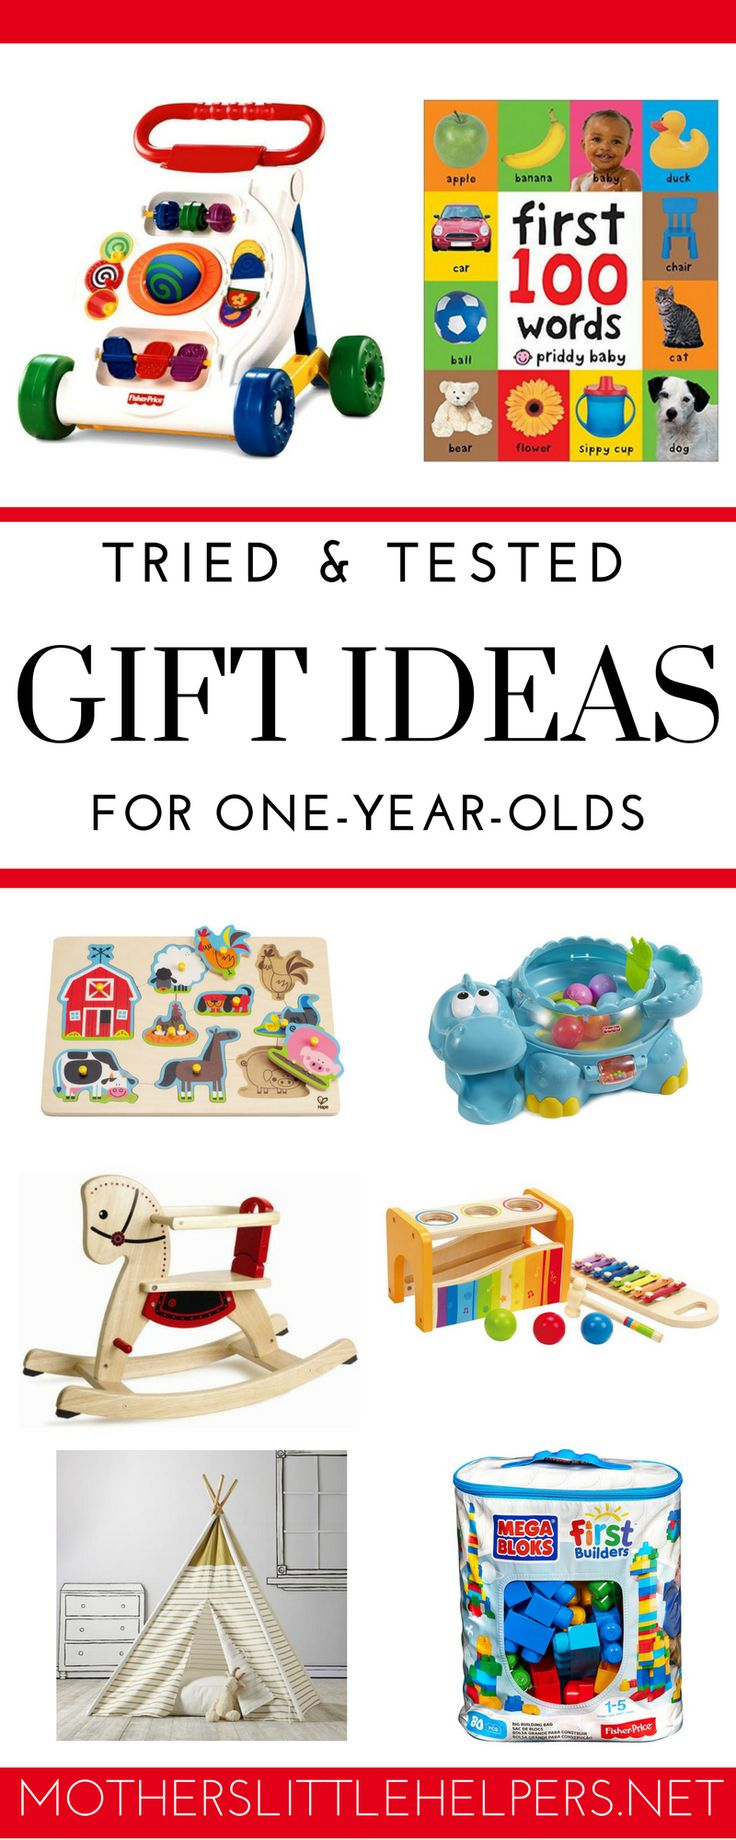 The 25 best one year old gift ideas ideas on pinterest the 25 best one year old gift ideas ideas on pinterest christmas gifts for one year olds diy gifts for 1 year old boy and toys for 1 year old negle Image collections